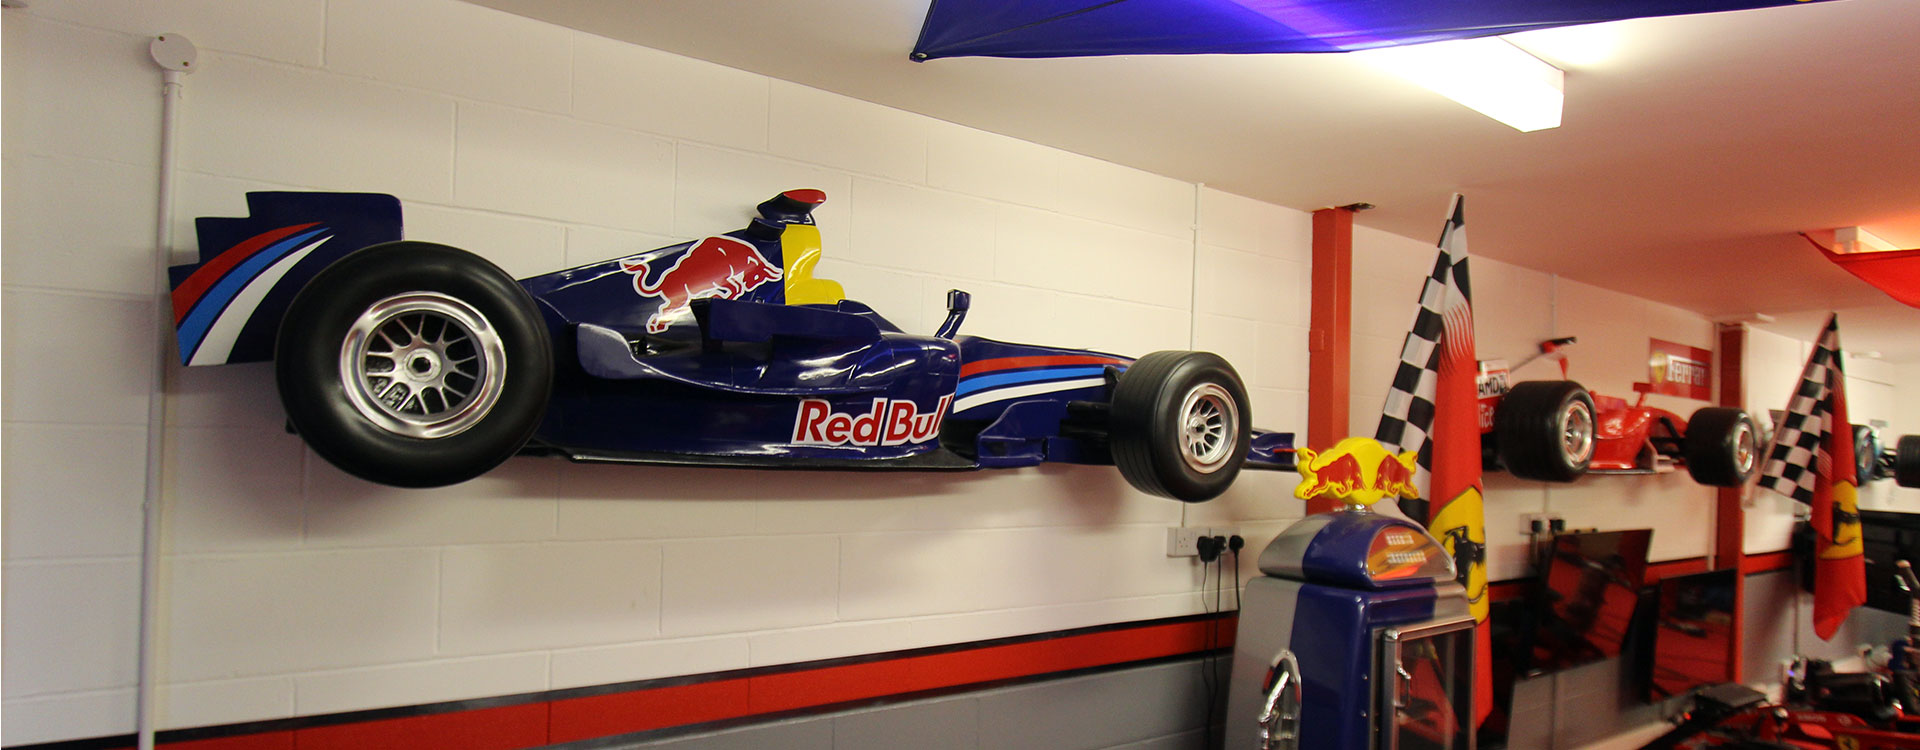 THE RACE CAVE - Simulator Racing Center - Pontypridd